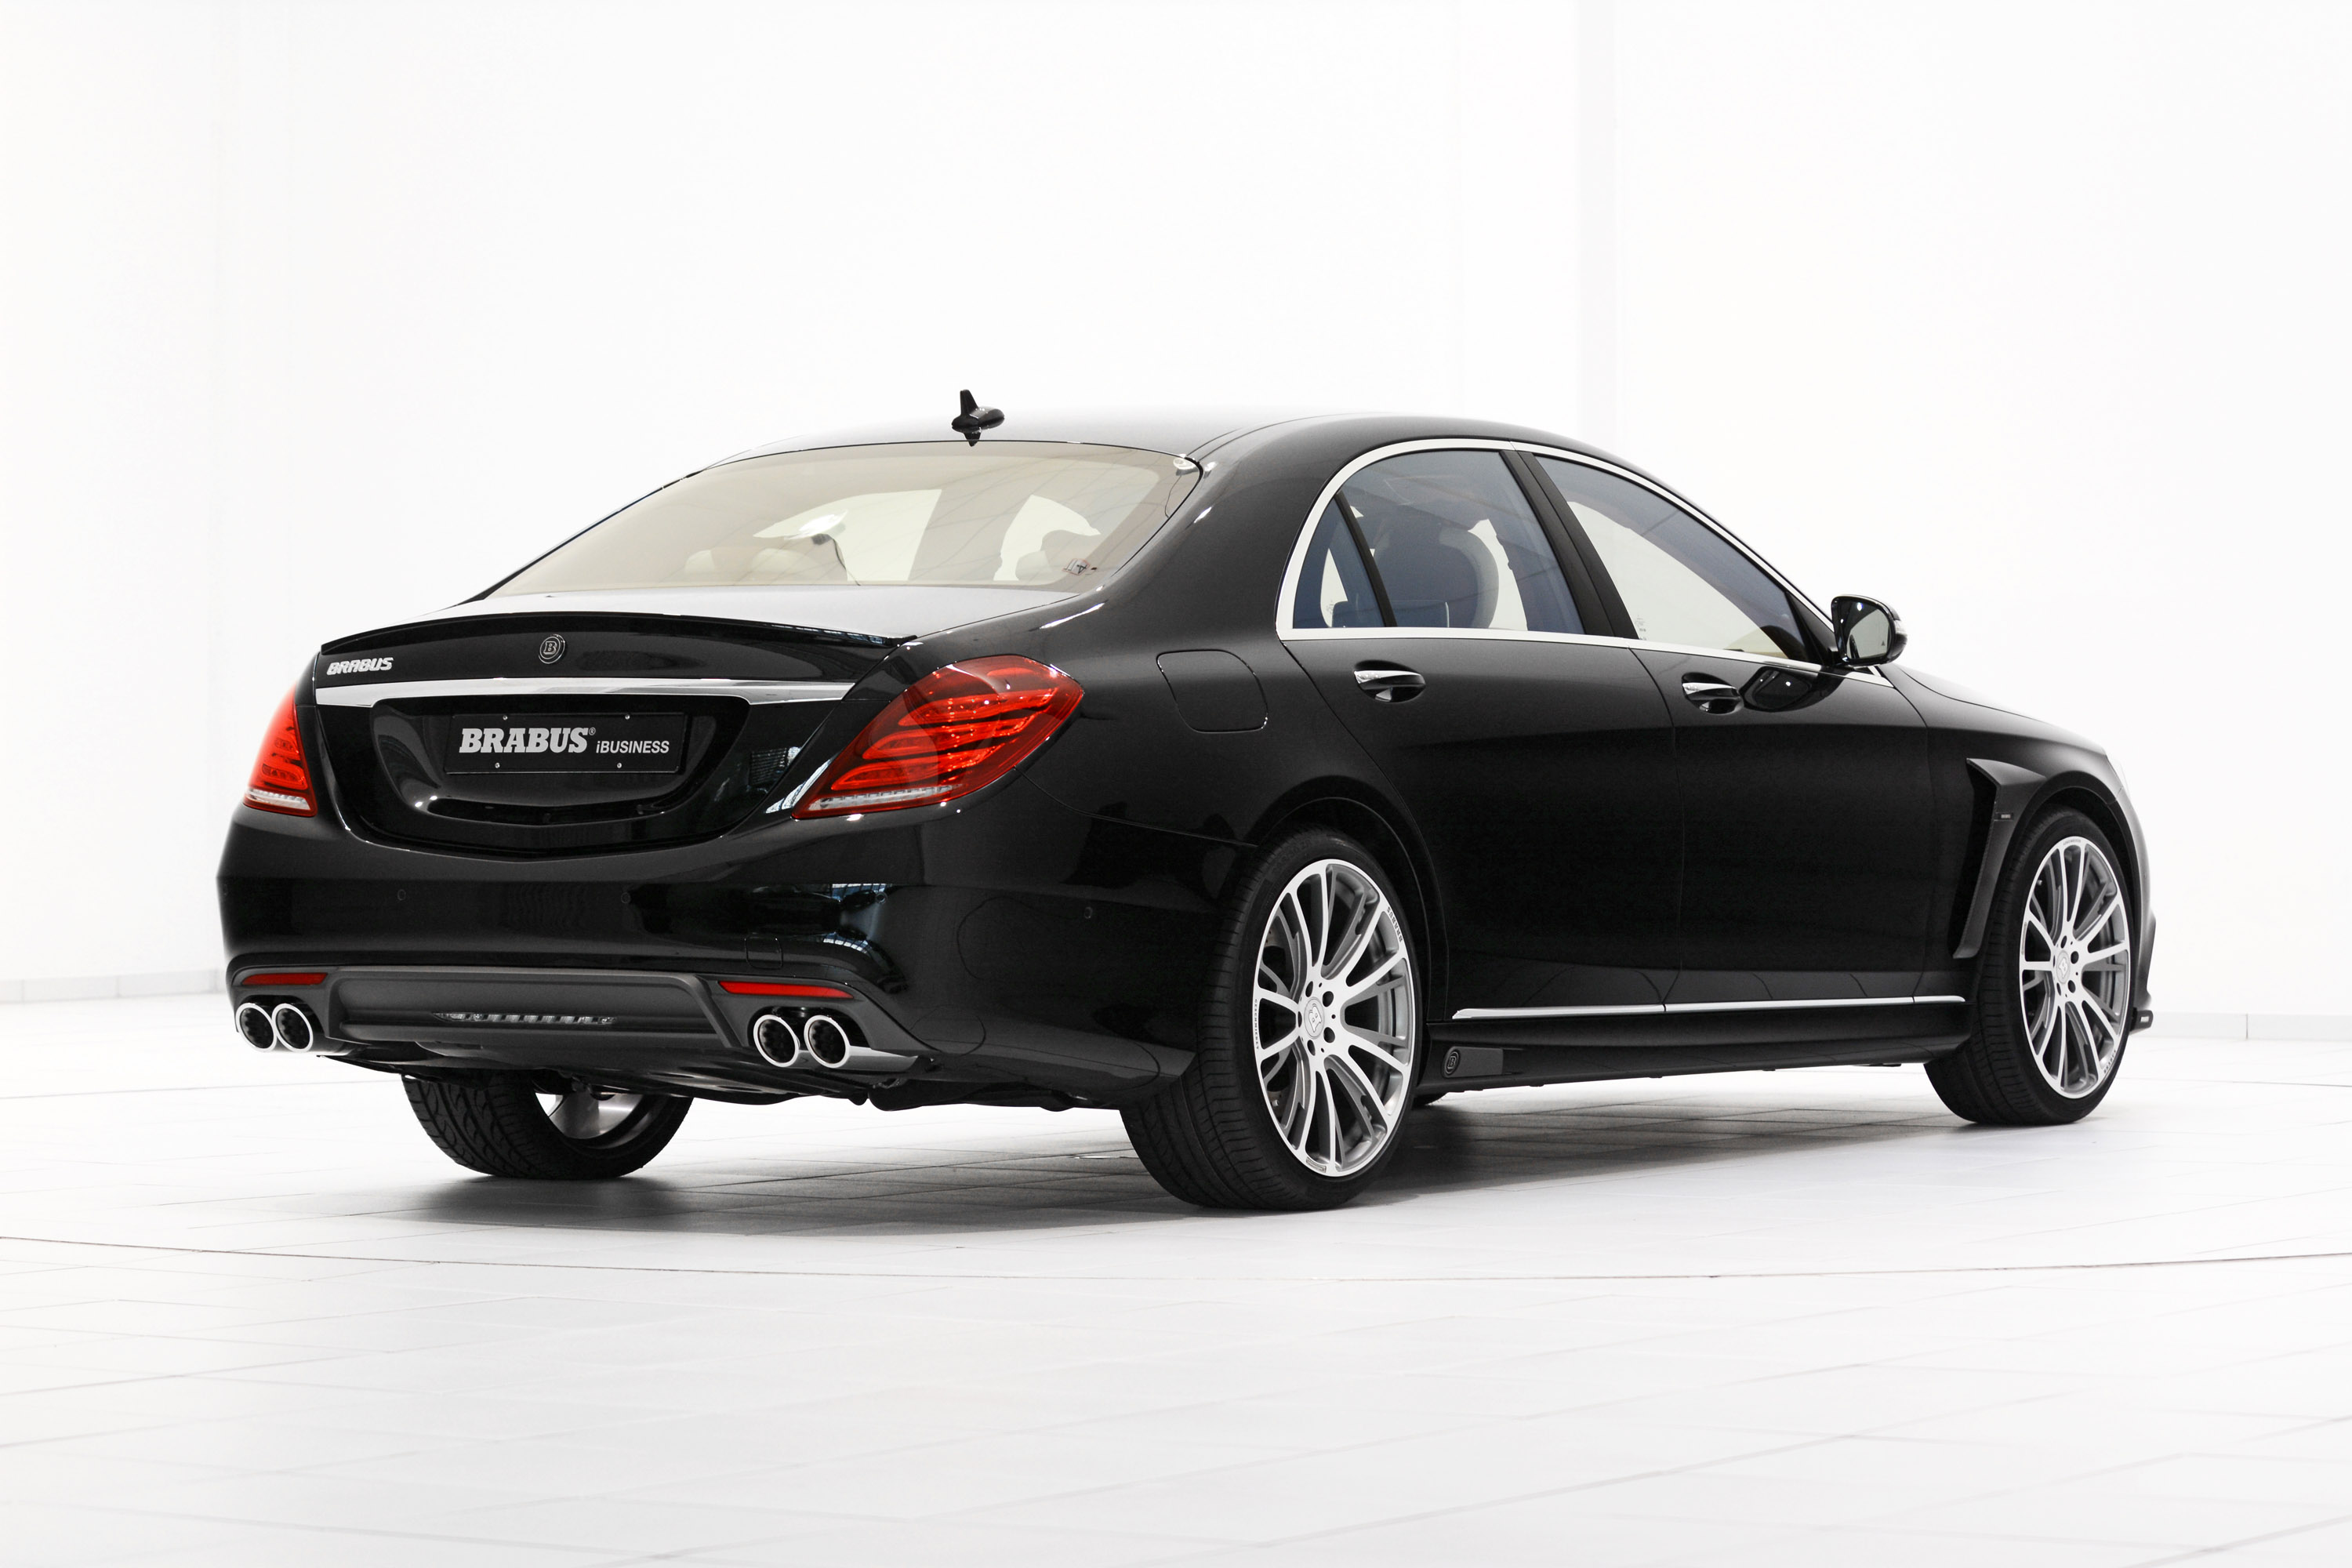 Brabus 850 6 0 bi turbo ibusiness based on mercedes benz for Mercedes benz s63 amg biturbo